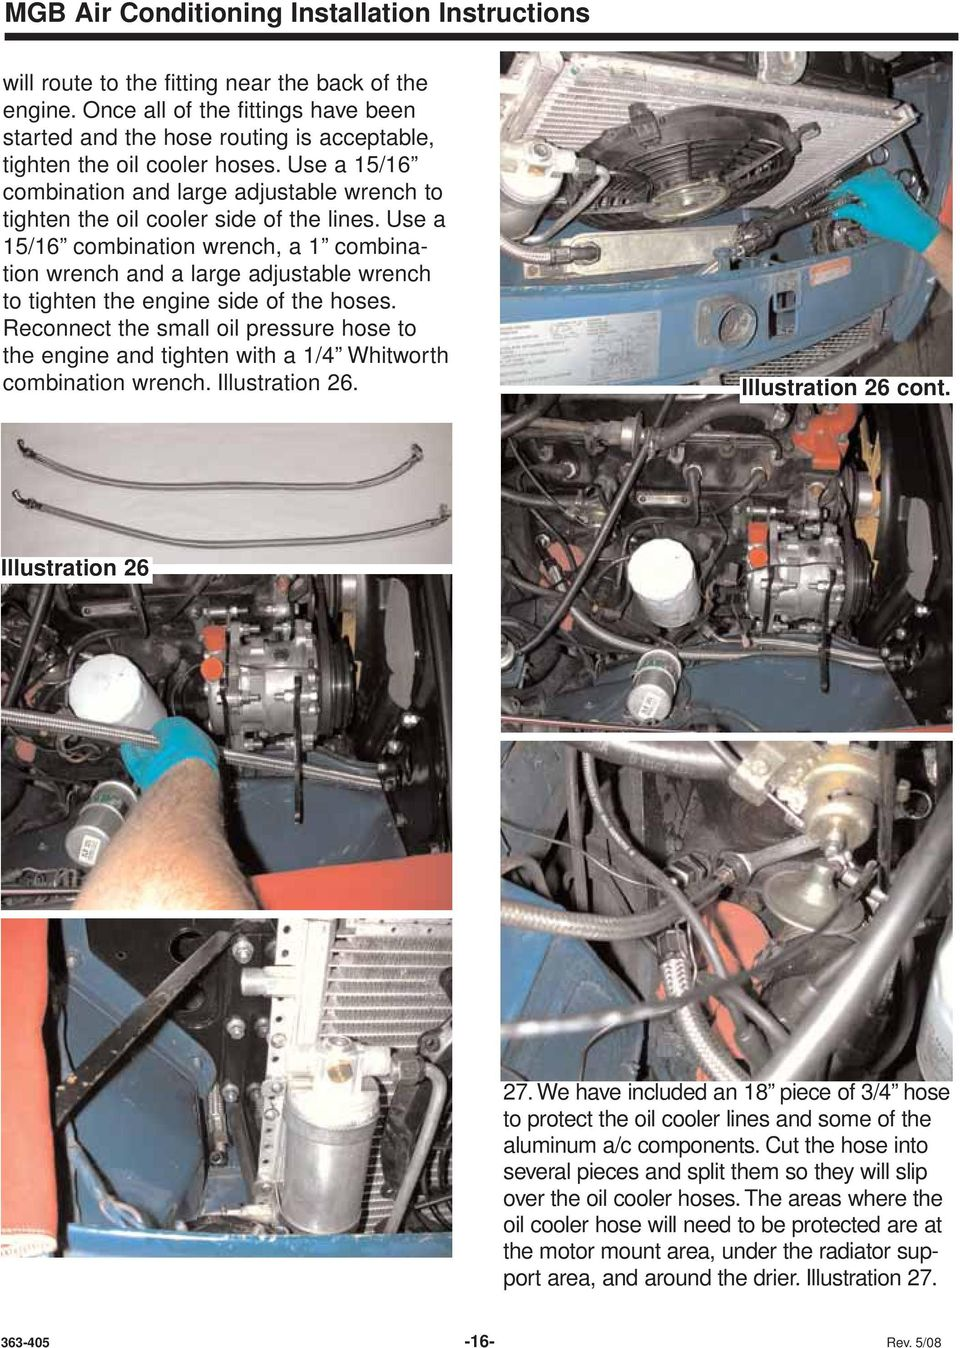 MGB Air Conditioning Installation Instructions For LHD cars